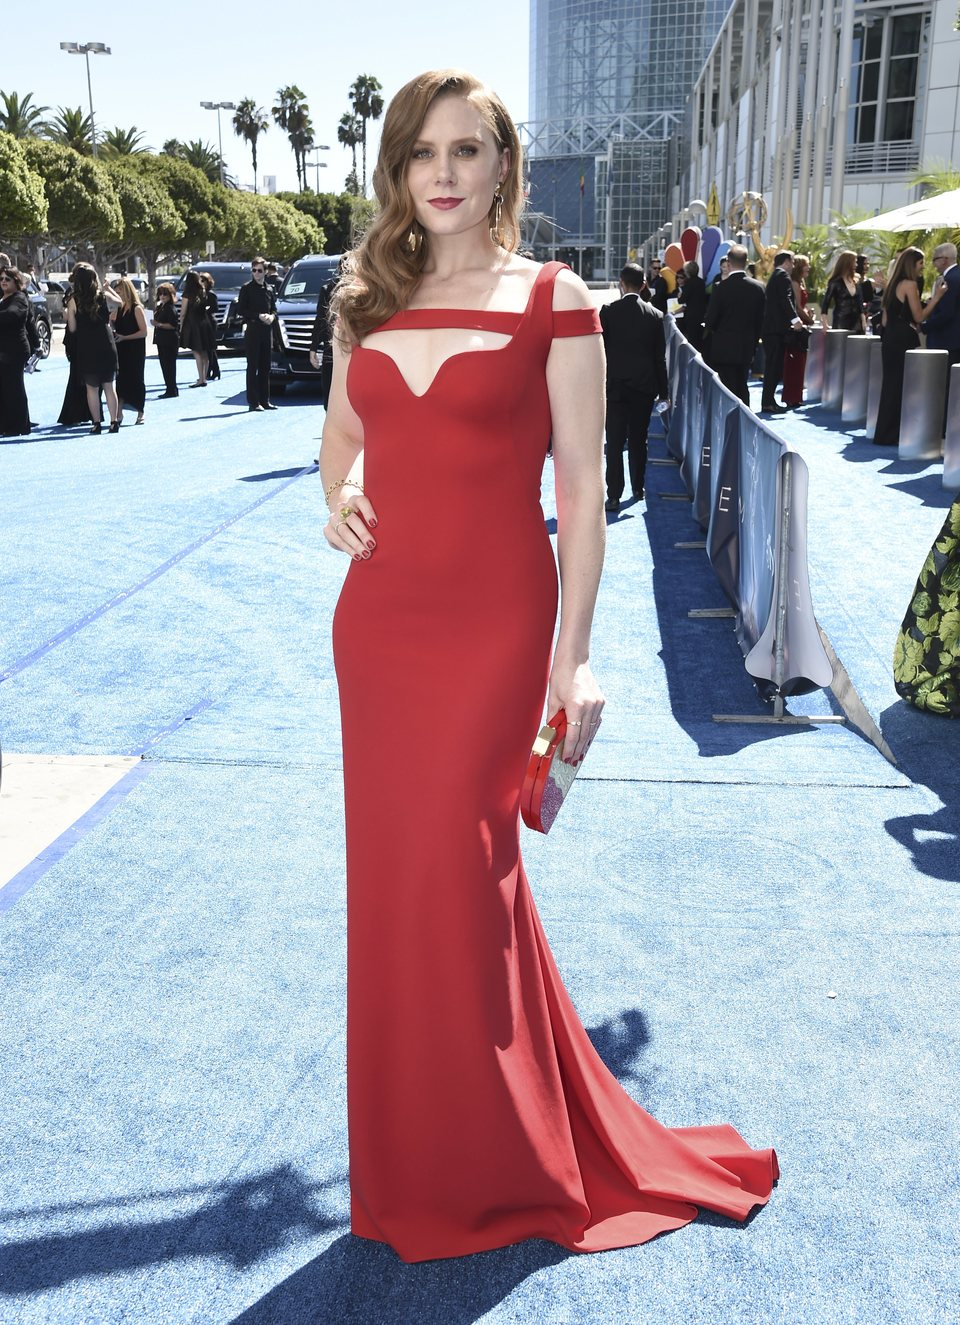 Christiane Seidel on the red carpet at the Emmys 2018